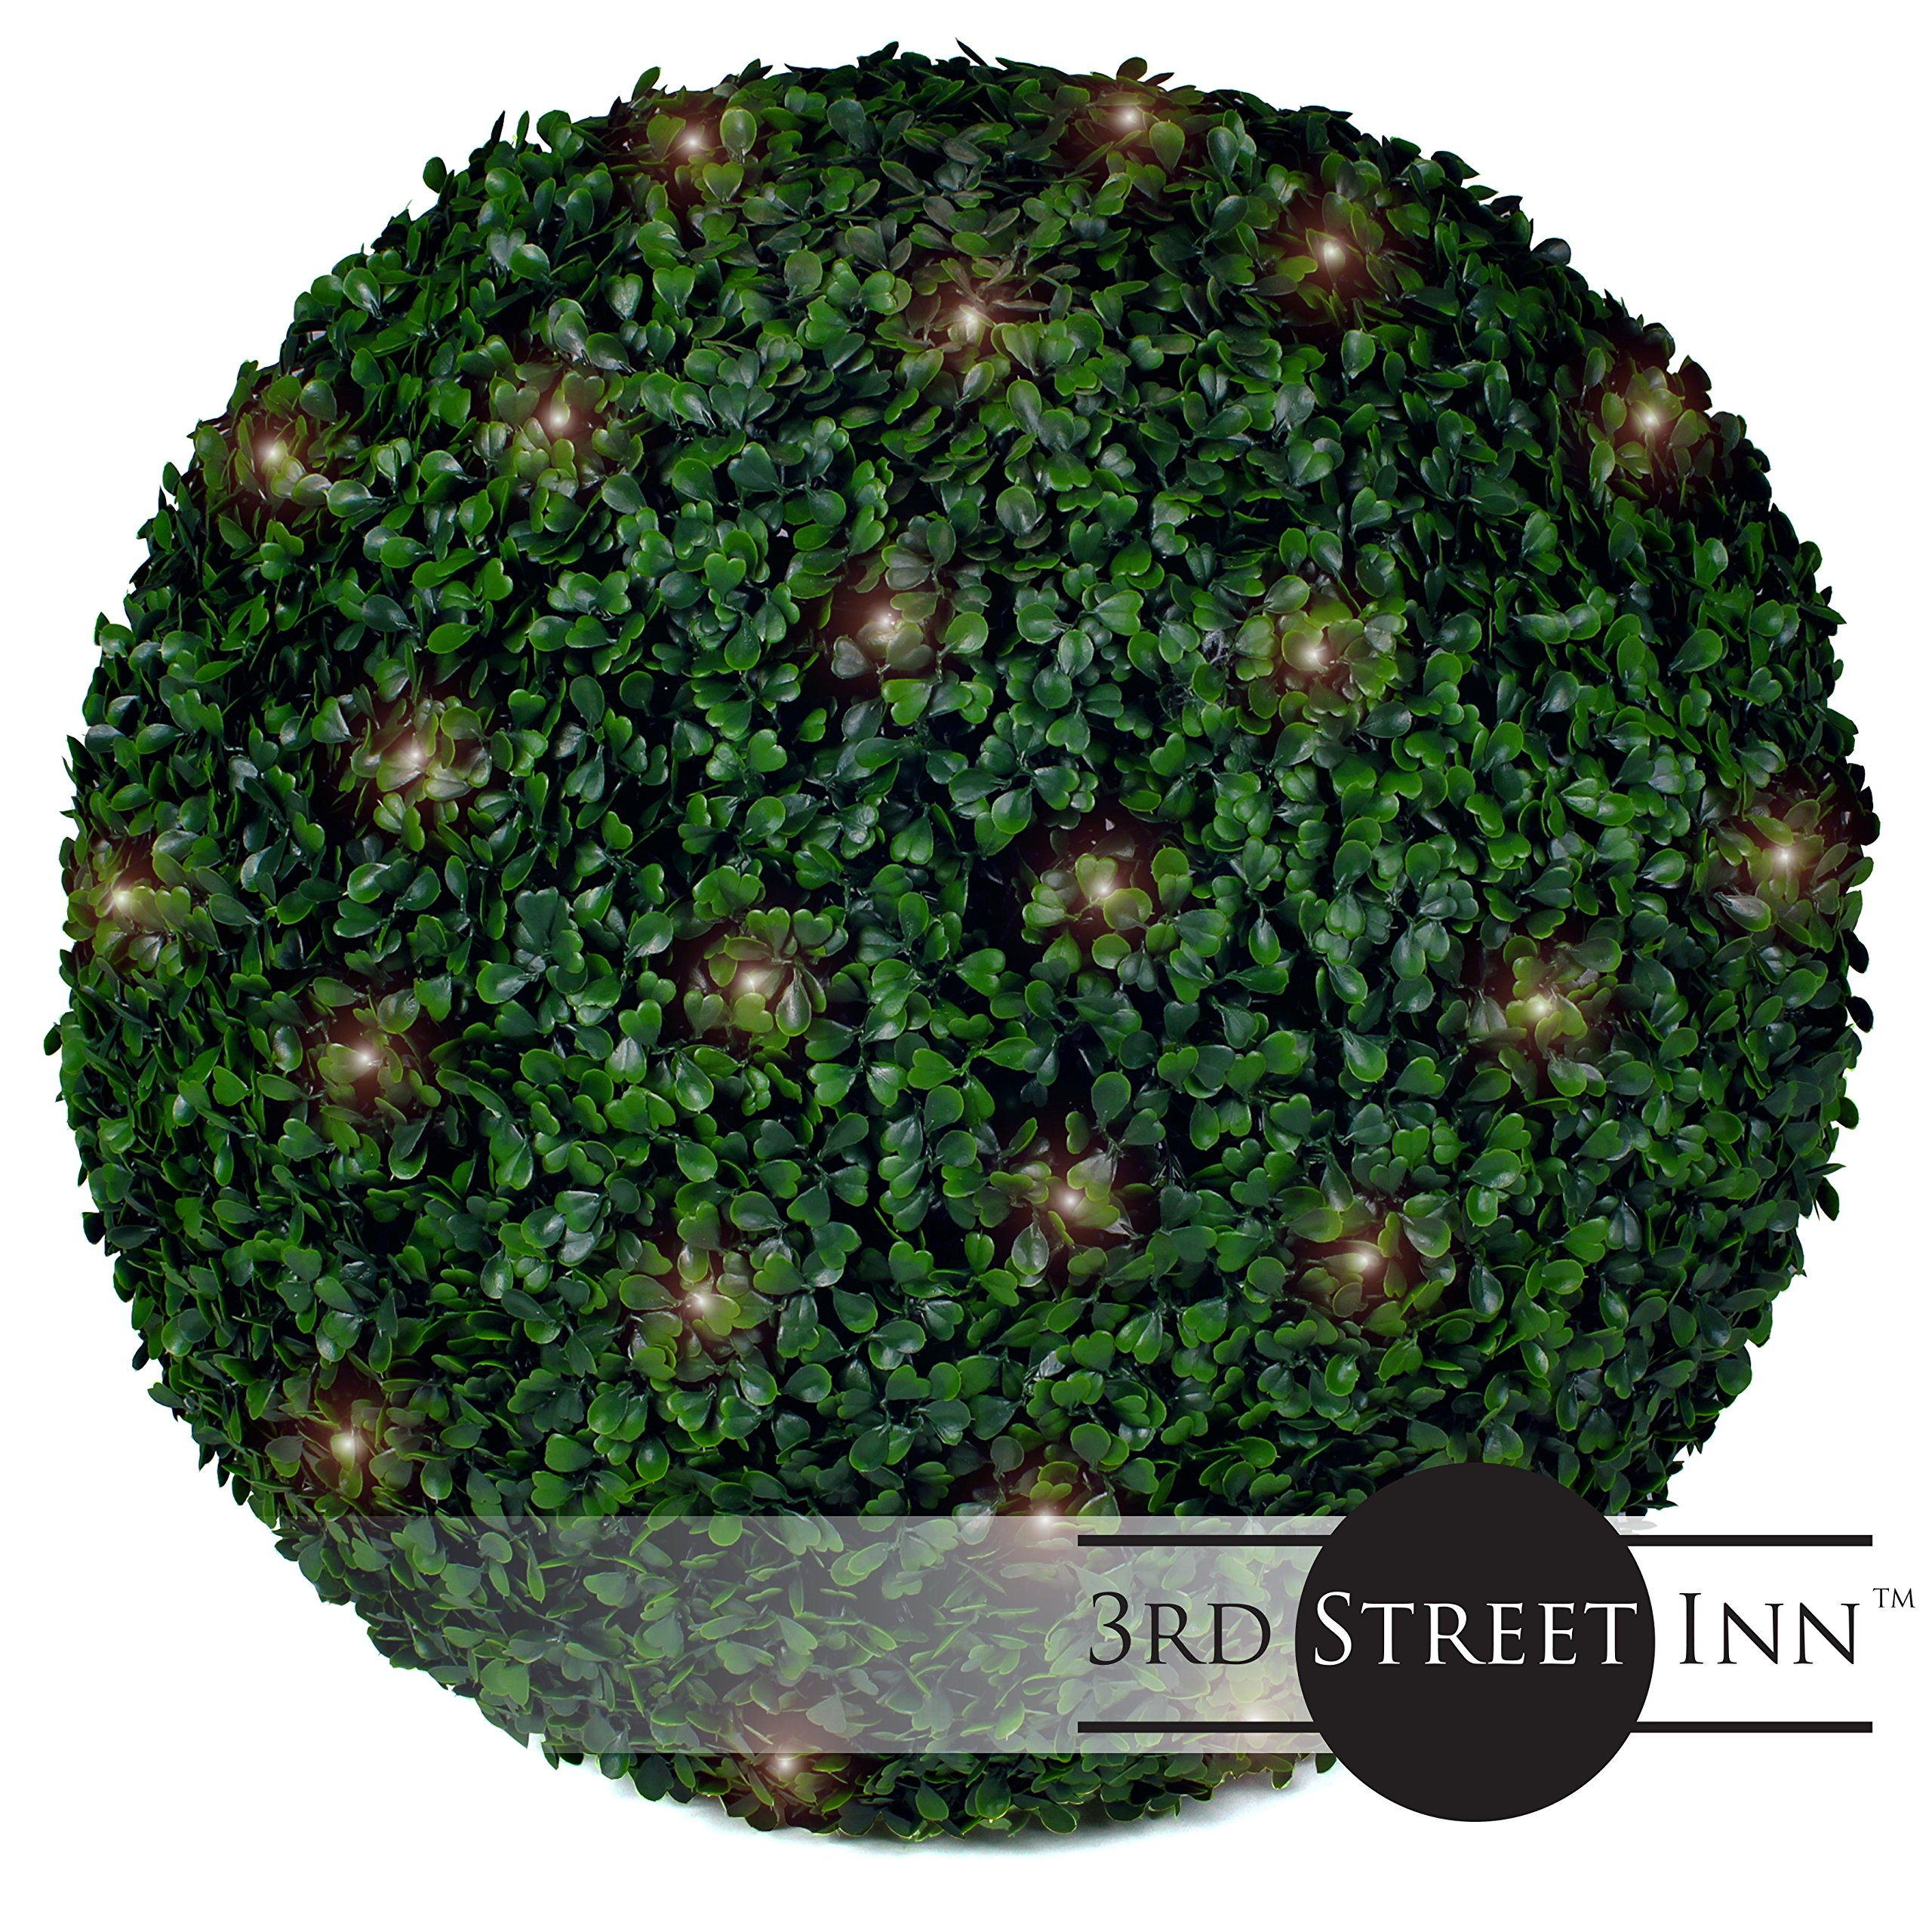 Boxwood Lighted Topiary Ball - 19'' Artificial Pre-Lit Christmas Topiary Plant - Indoor/Outdoor Decorative Light Plant Ball - Wedding and Holiday Decor (2-Pack) by 3rd Street Inn